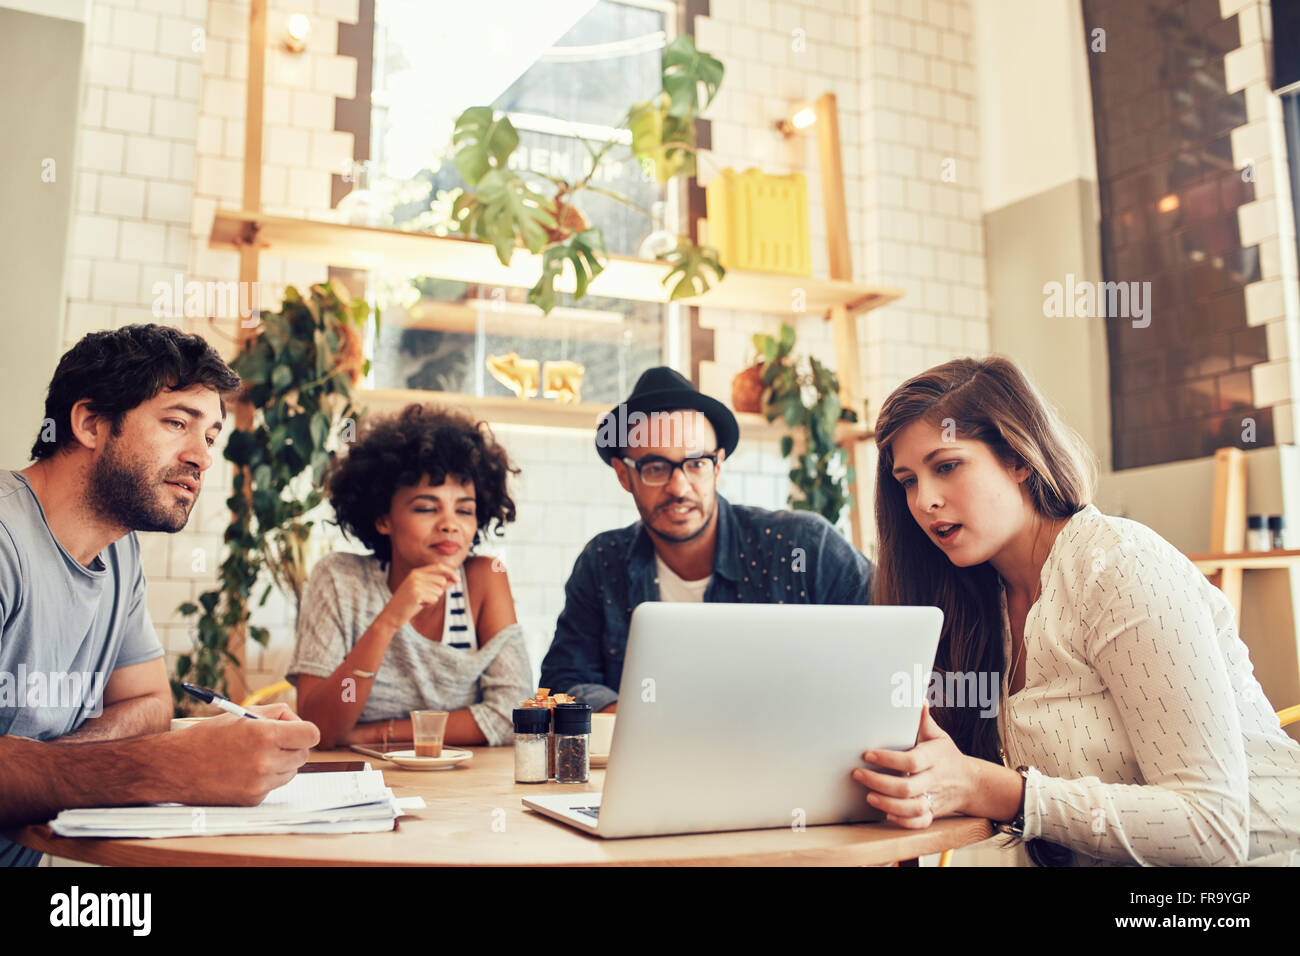 Portrait of young creative team sitting at a cafe and looking at a laptop. Young woman giving business presentation - Stock Image